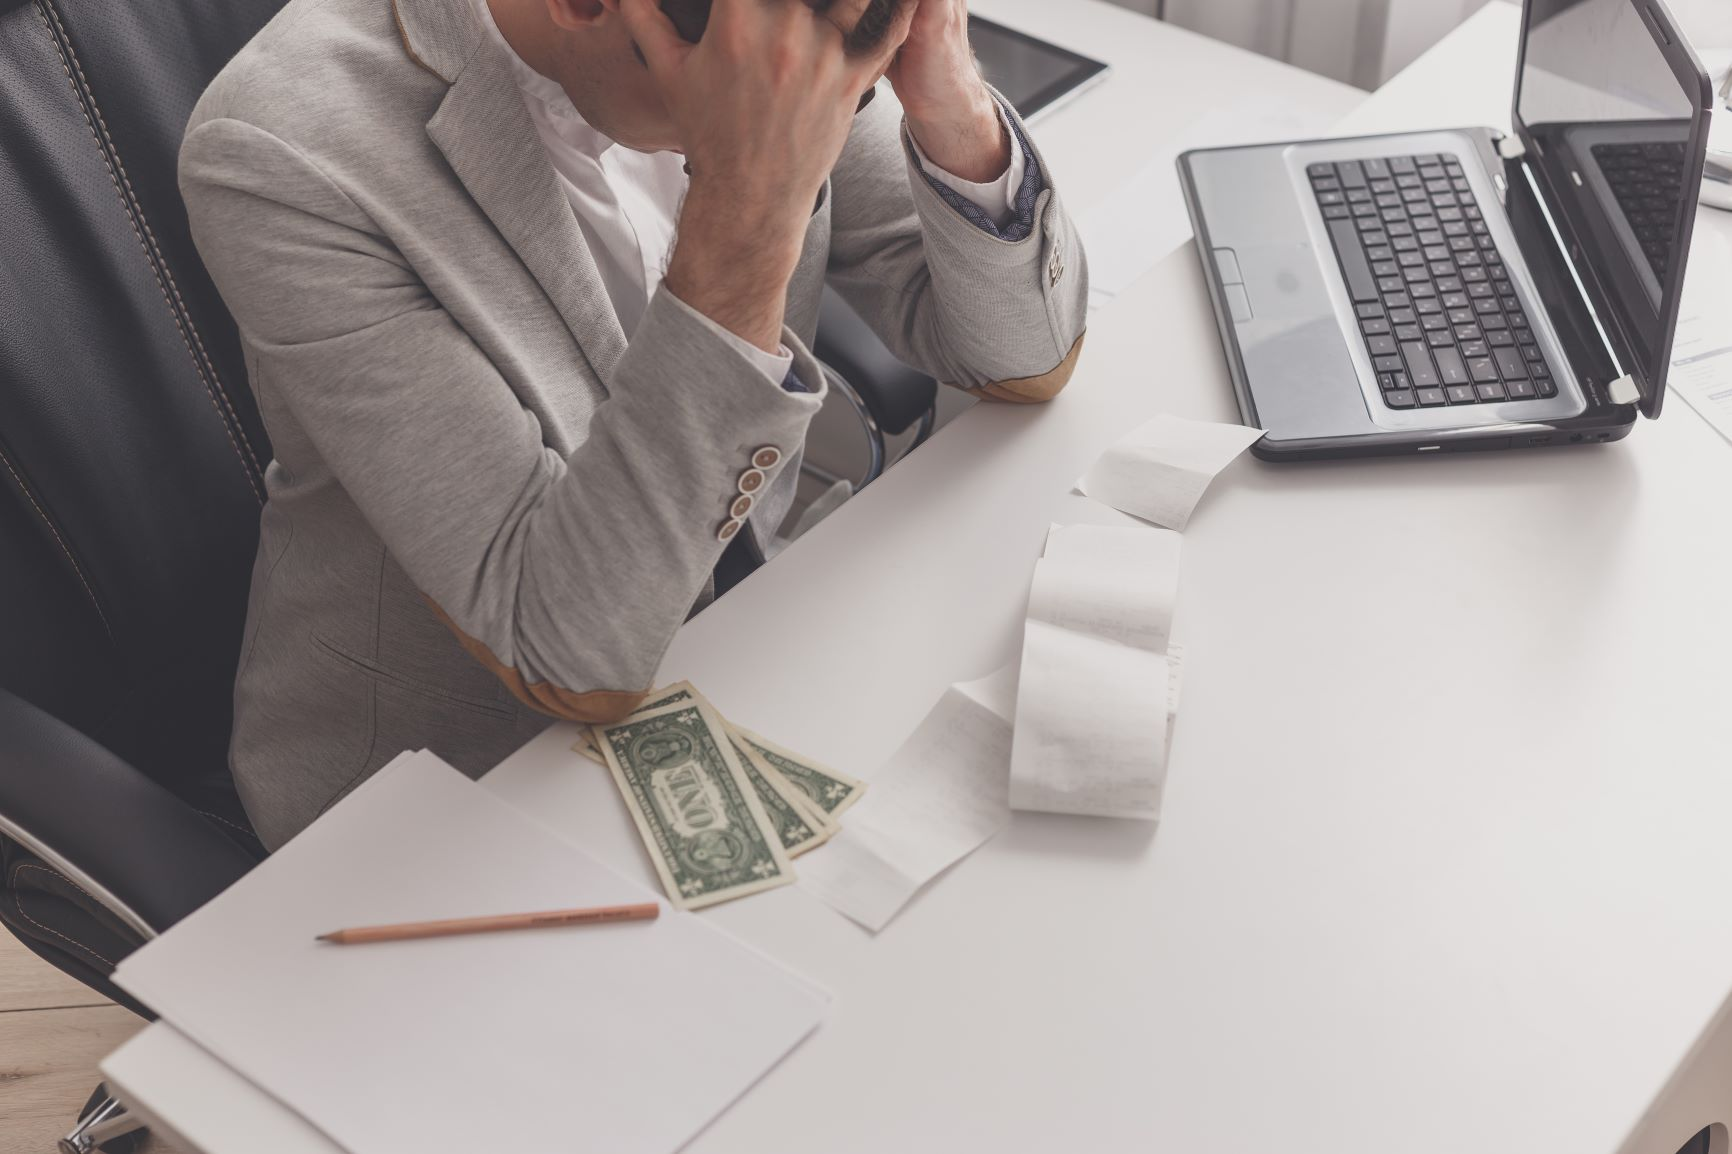 Man stressed about financial debt